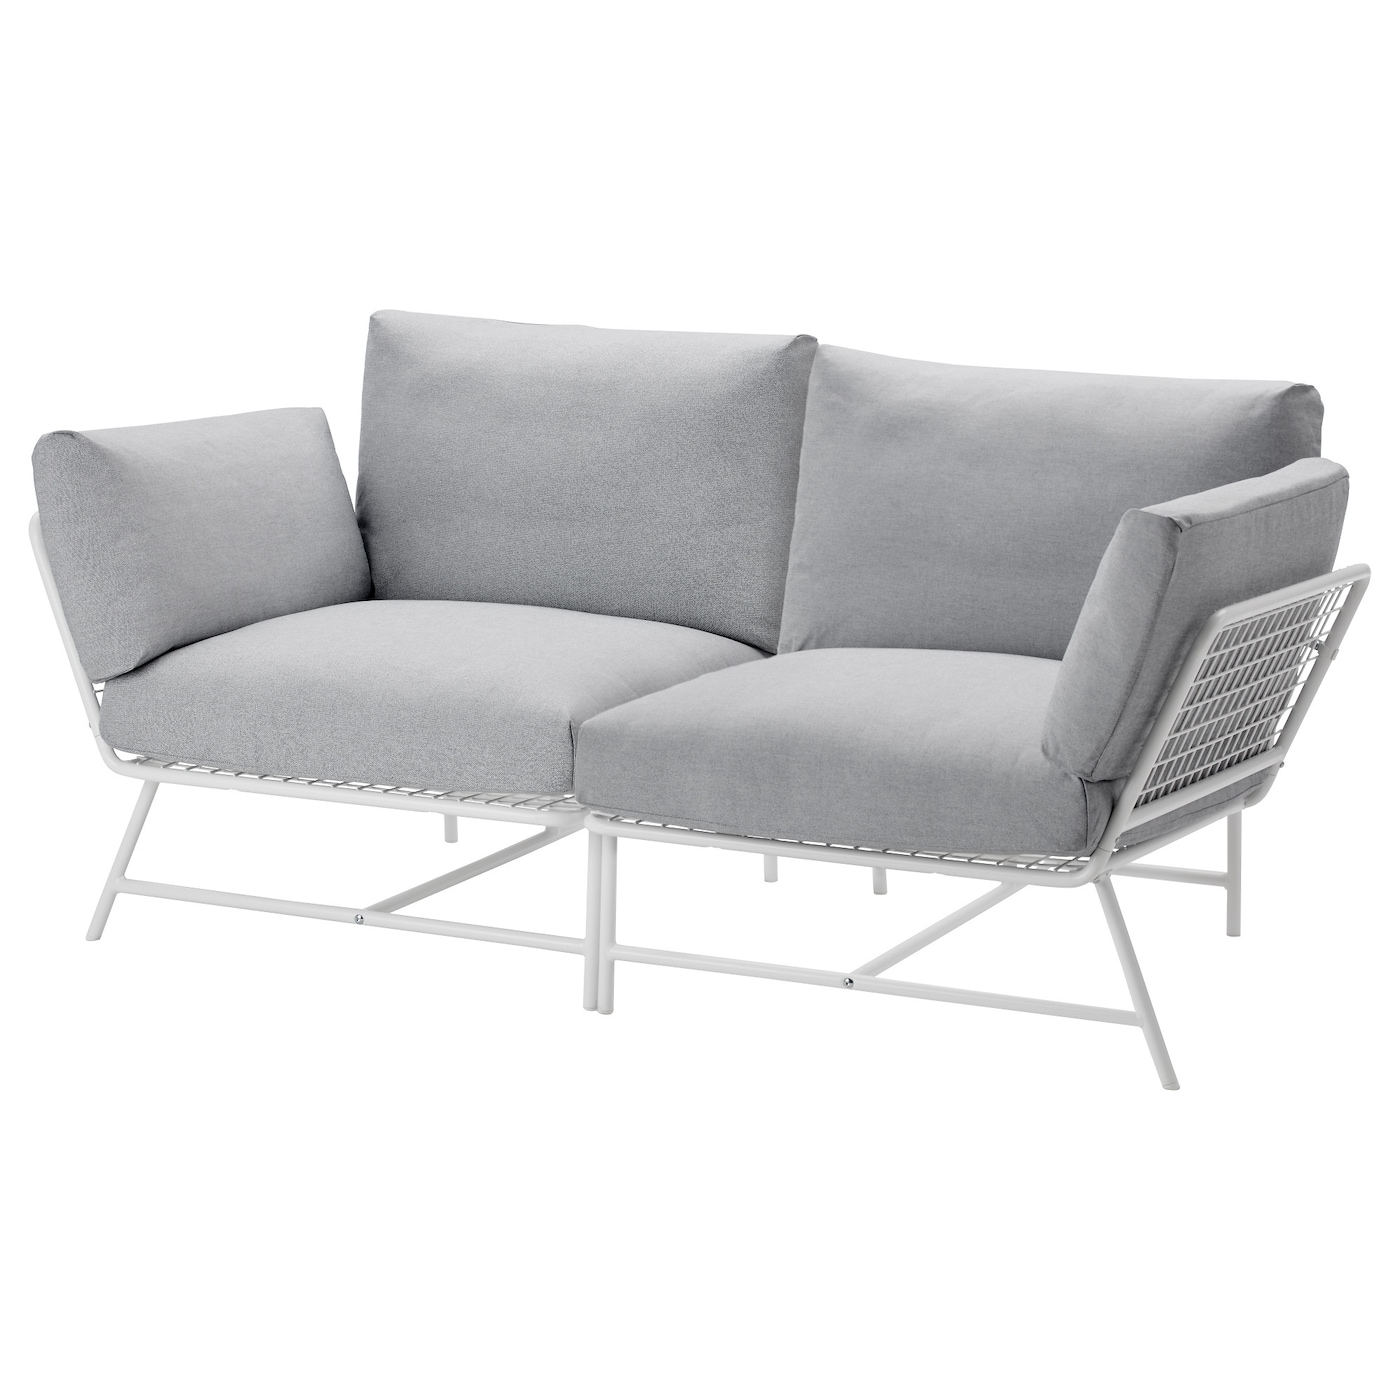 Sofas armchairs ikea for Sofa 1 5 sitzer